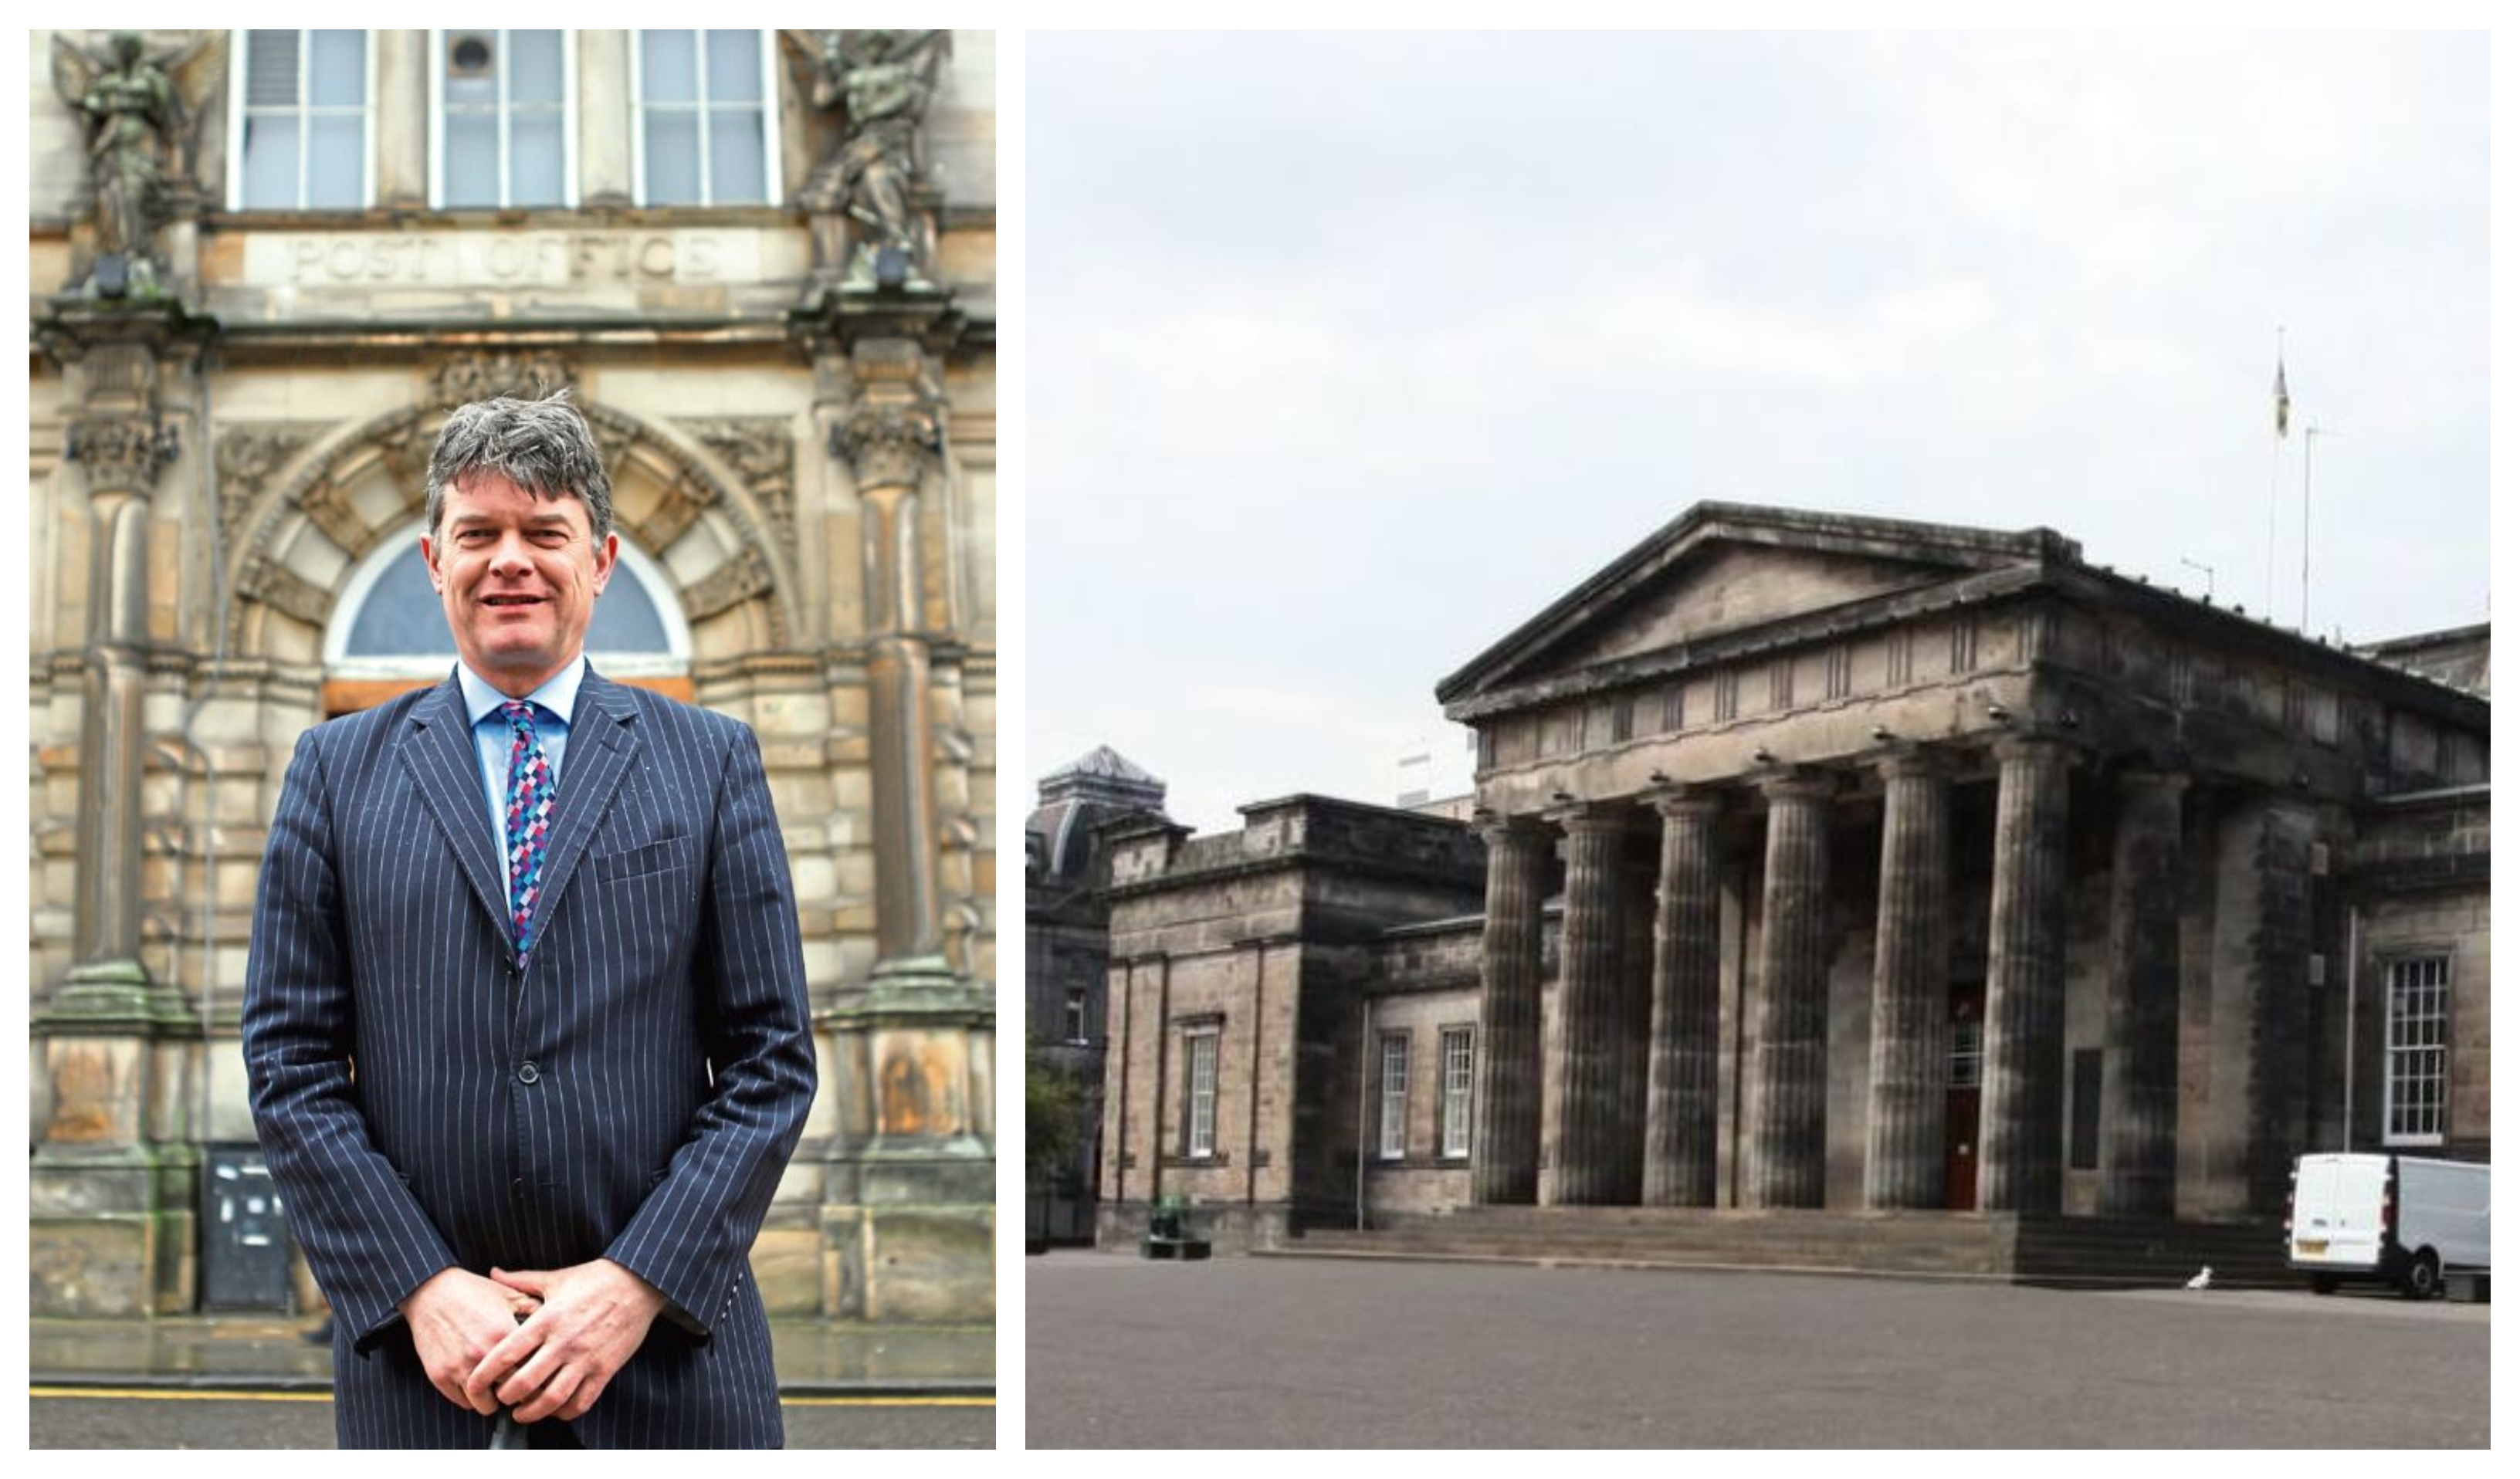 John Halliday and the High School of Dundee.